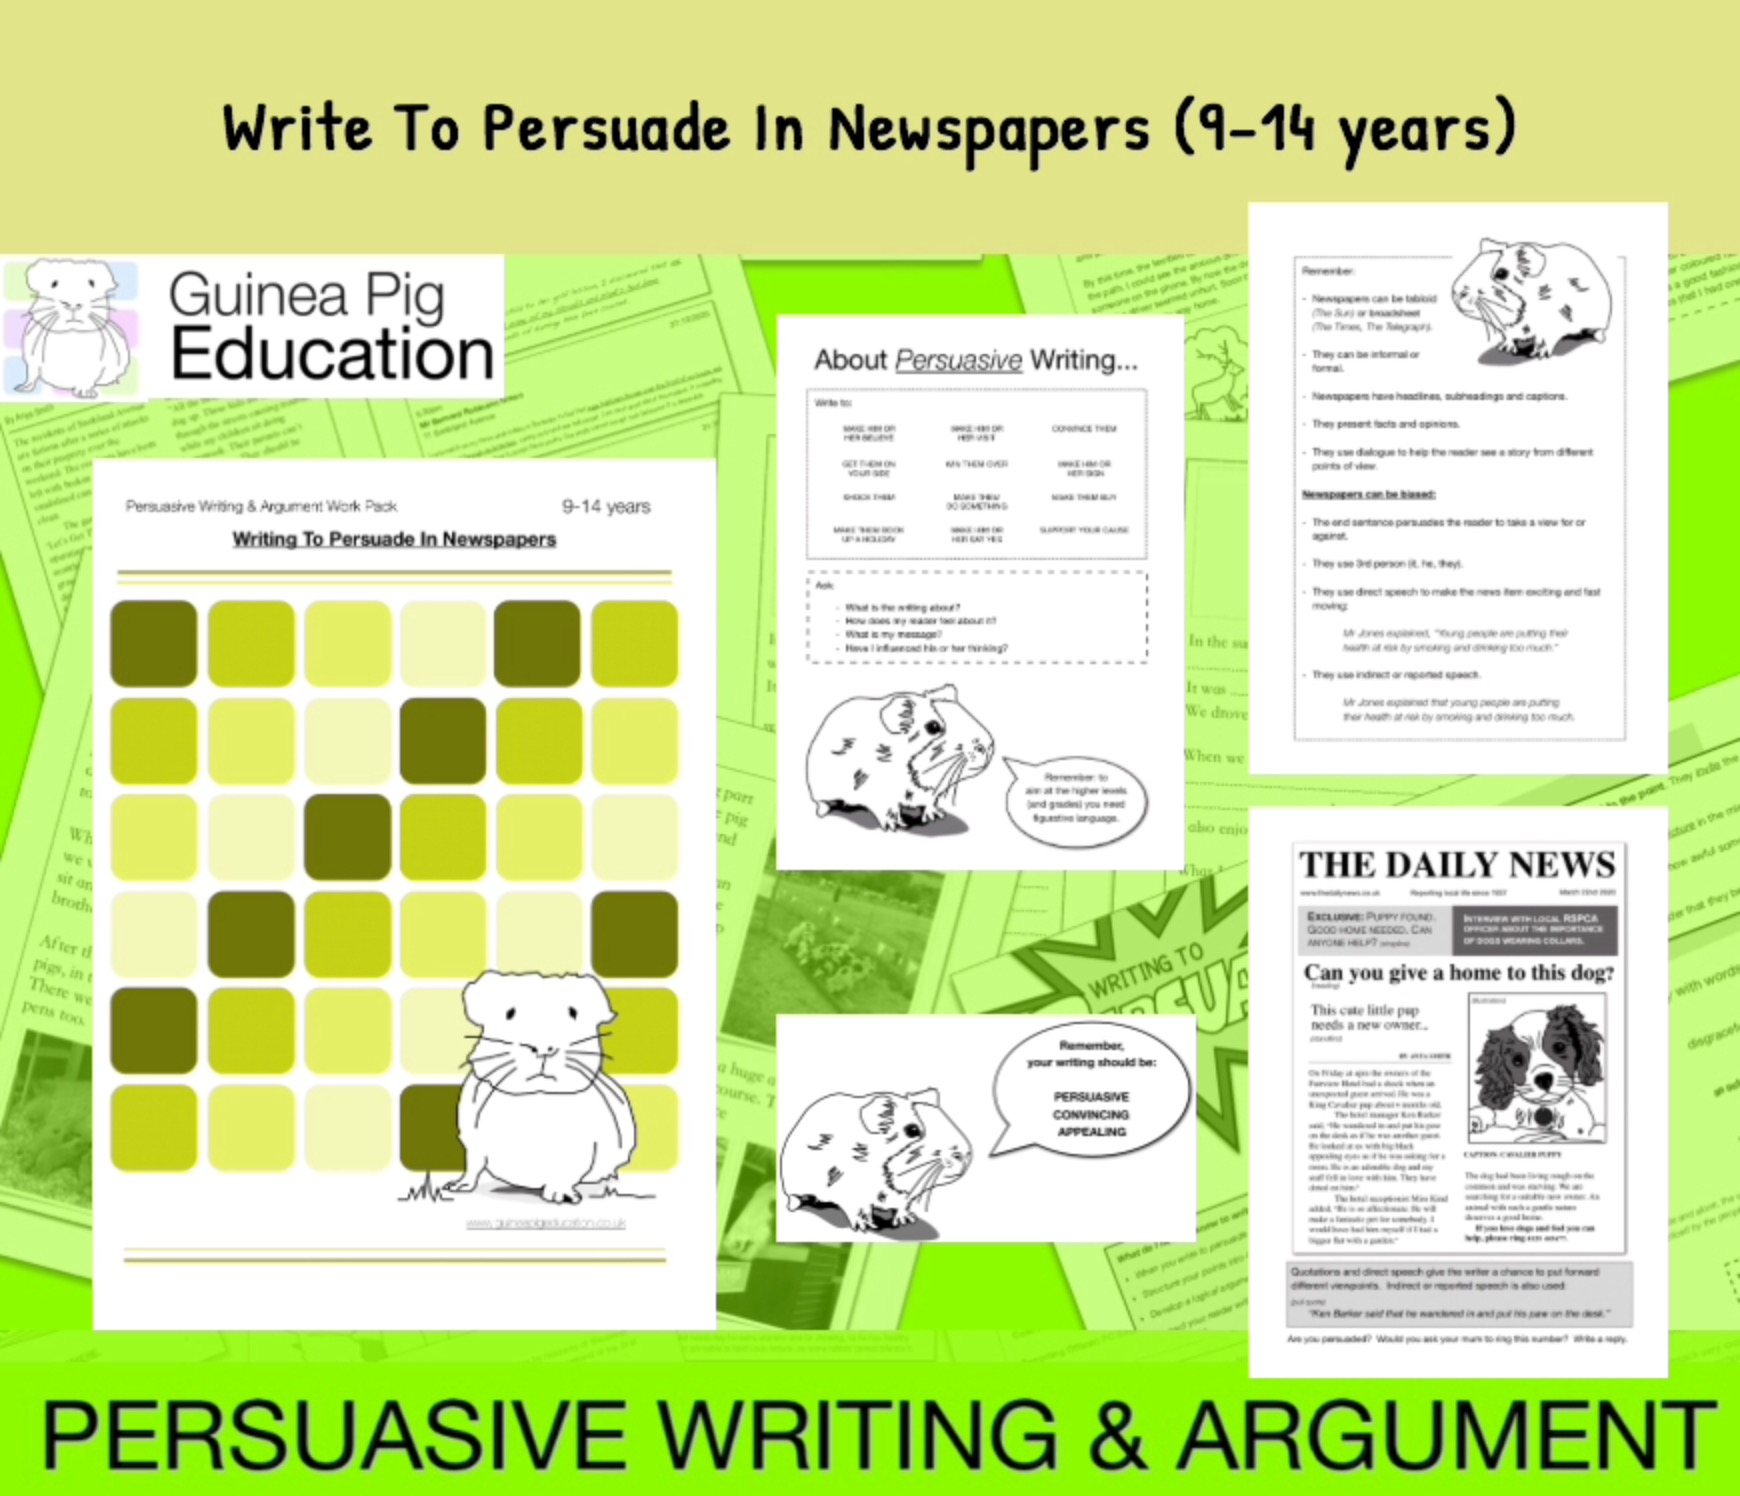 How To Write To Persuade In Newspaper Articles (9-14 years)